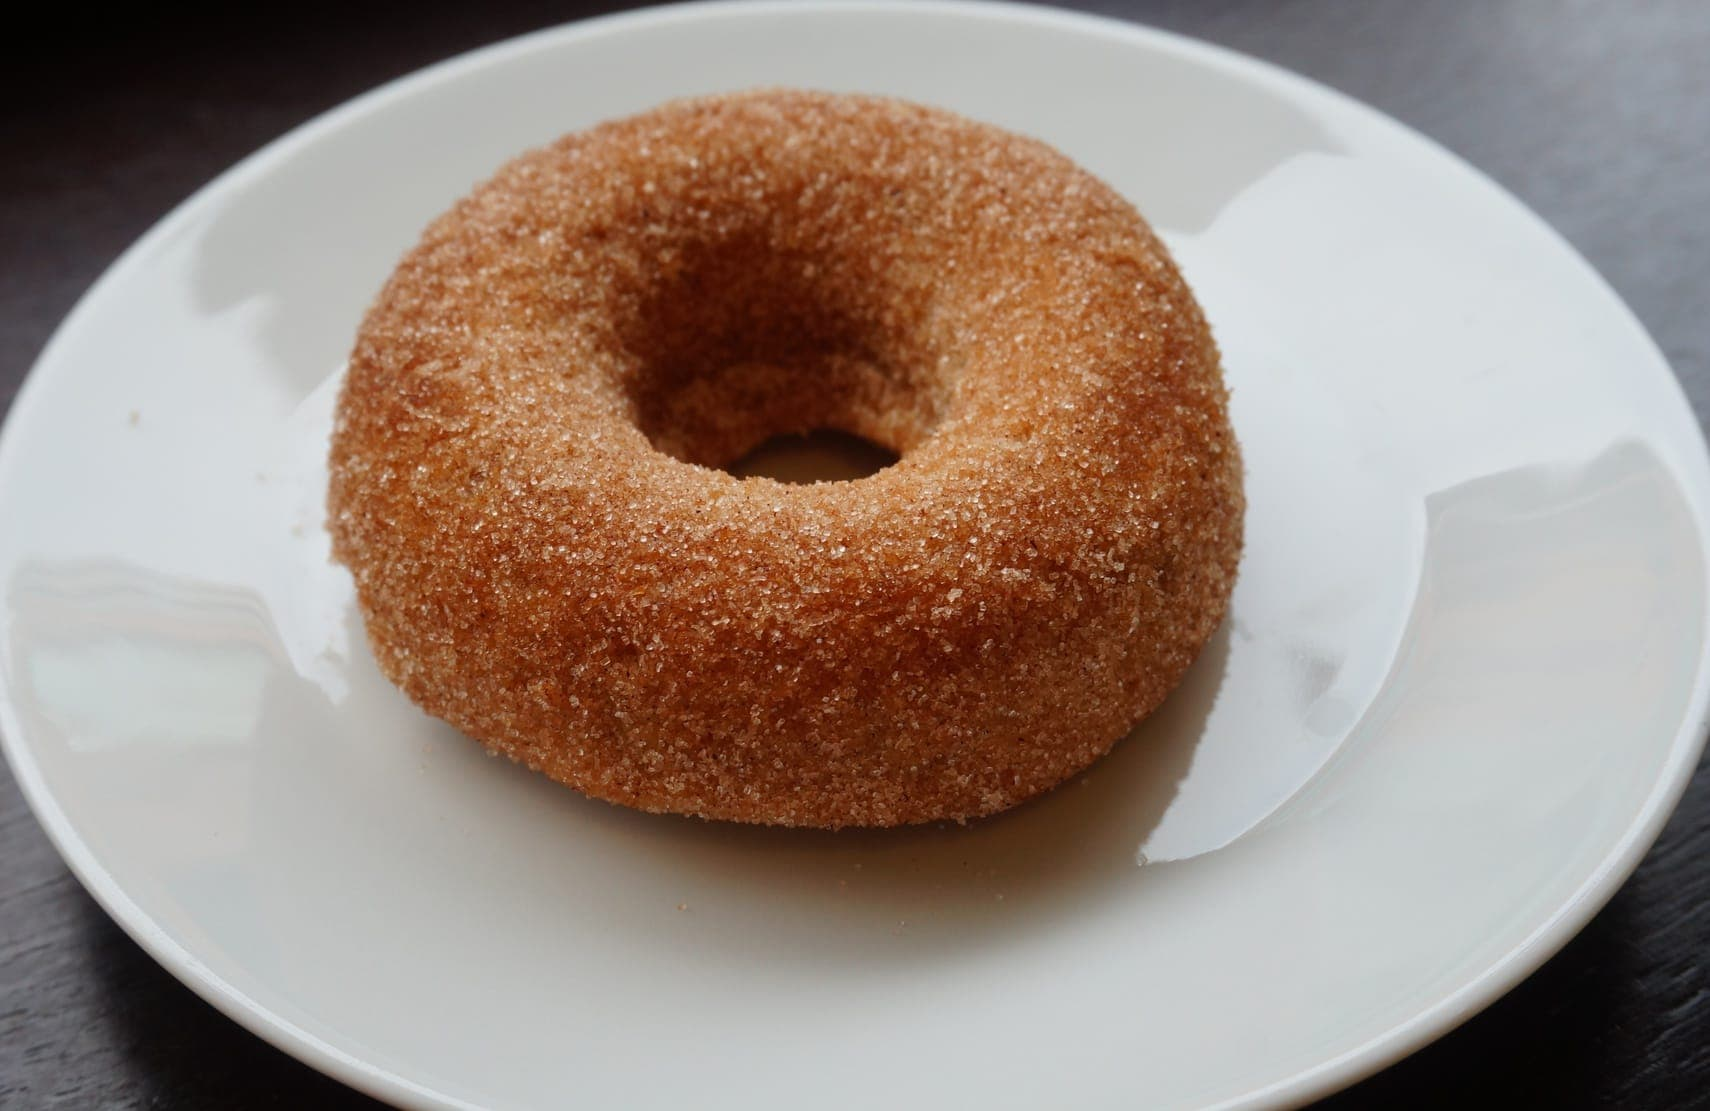 10 Seriously Awesome Vegan Doughnut Recipes